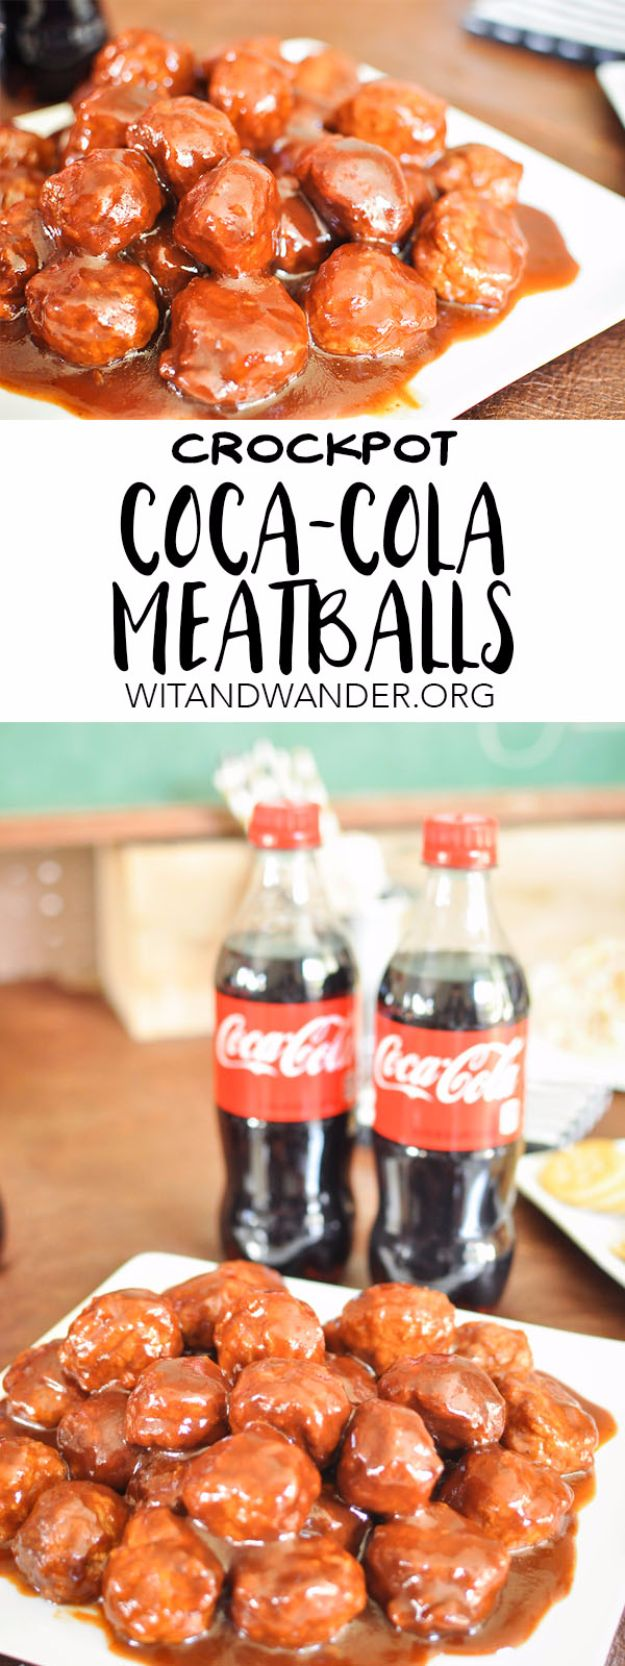 Best Coca Cola Recipes - Crockpot Coca Cola Meatballs - Make Awesome Coke Chicken, Coca Cola Cake, Meatballs, Sodas, Drinks, Sweets, Dinners, Meat, Slow Cooker and Recipe Ideas With Cake Mixes - Fun Food Projects For Families and Parties With Step By Step Tutorials http://diyjoy.com/coca-cola-recipes